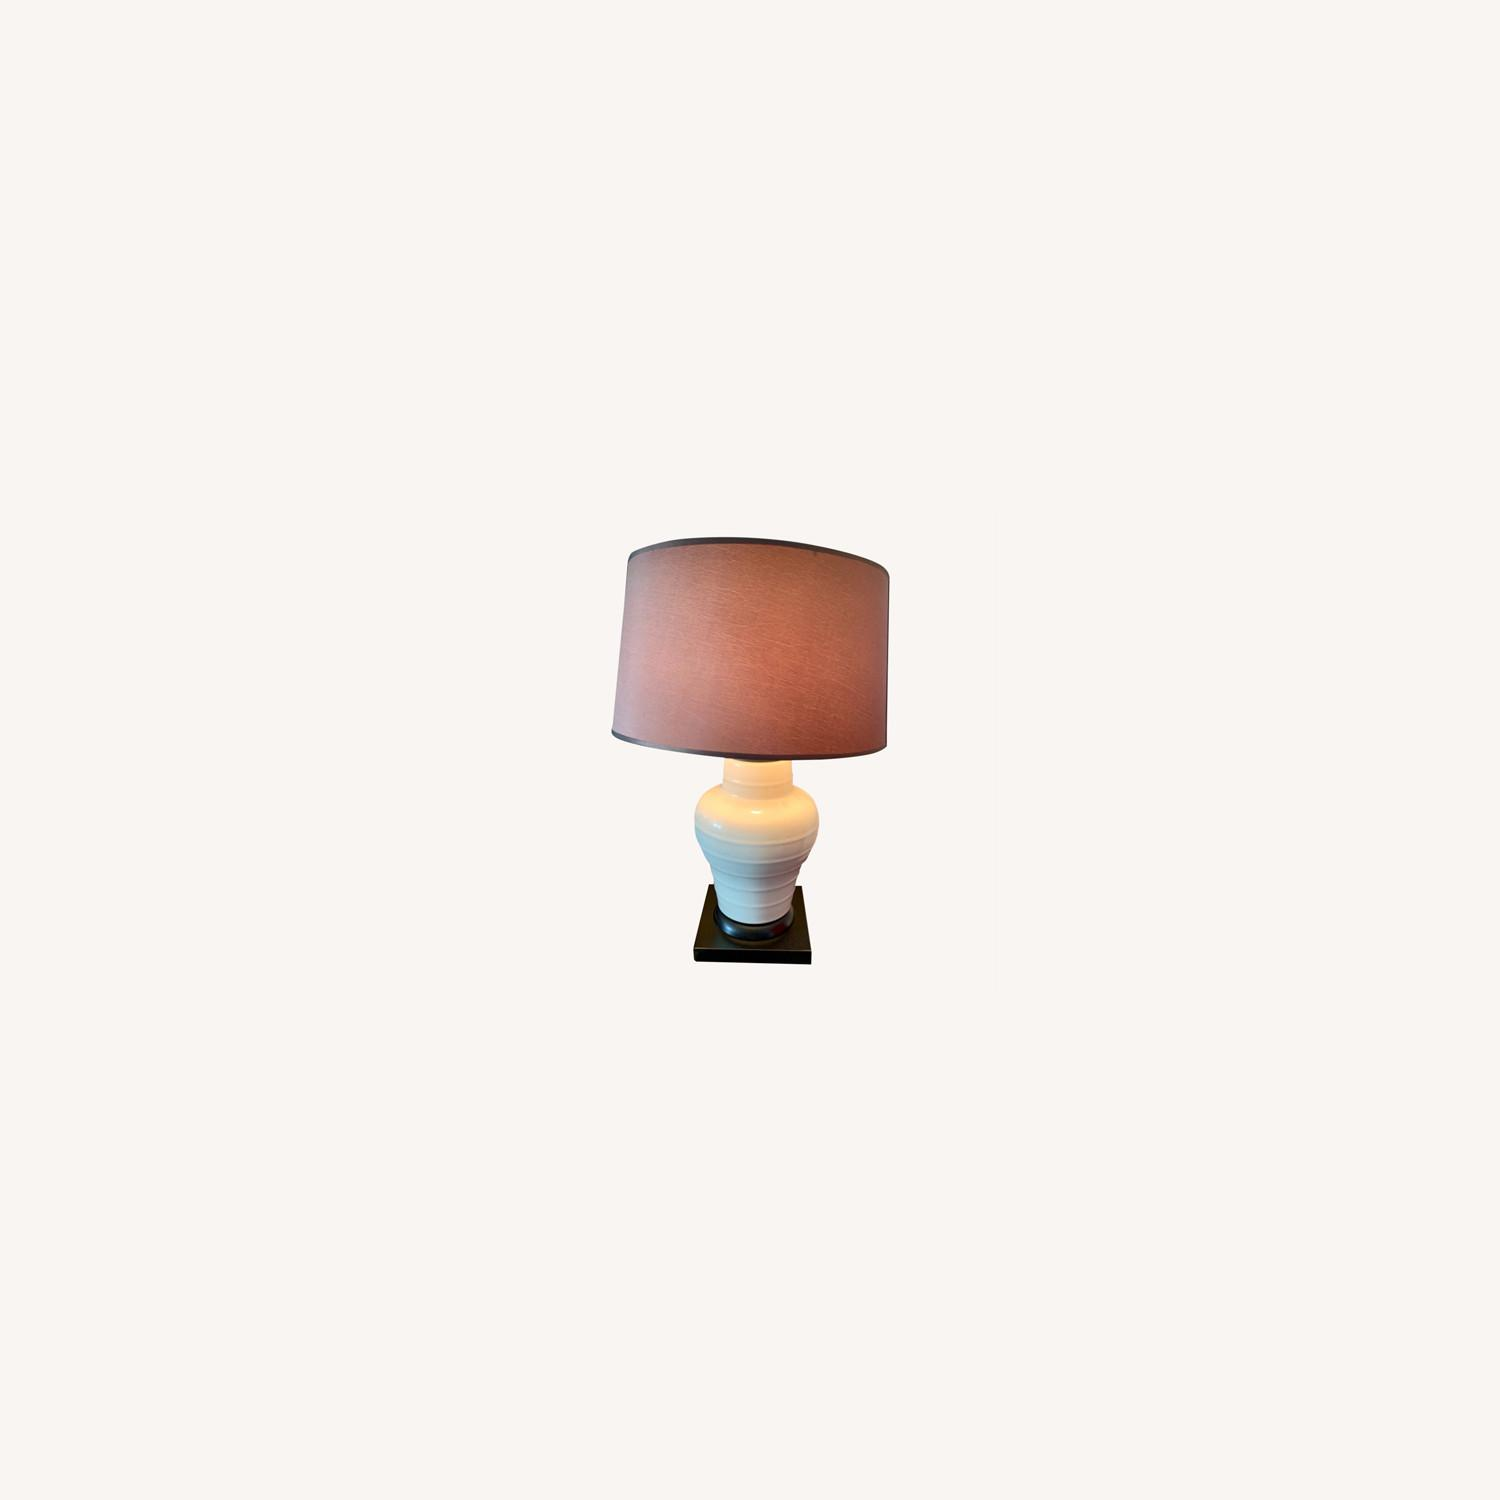 Lamps - image-0